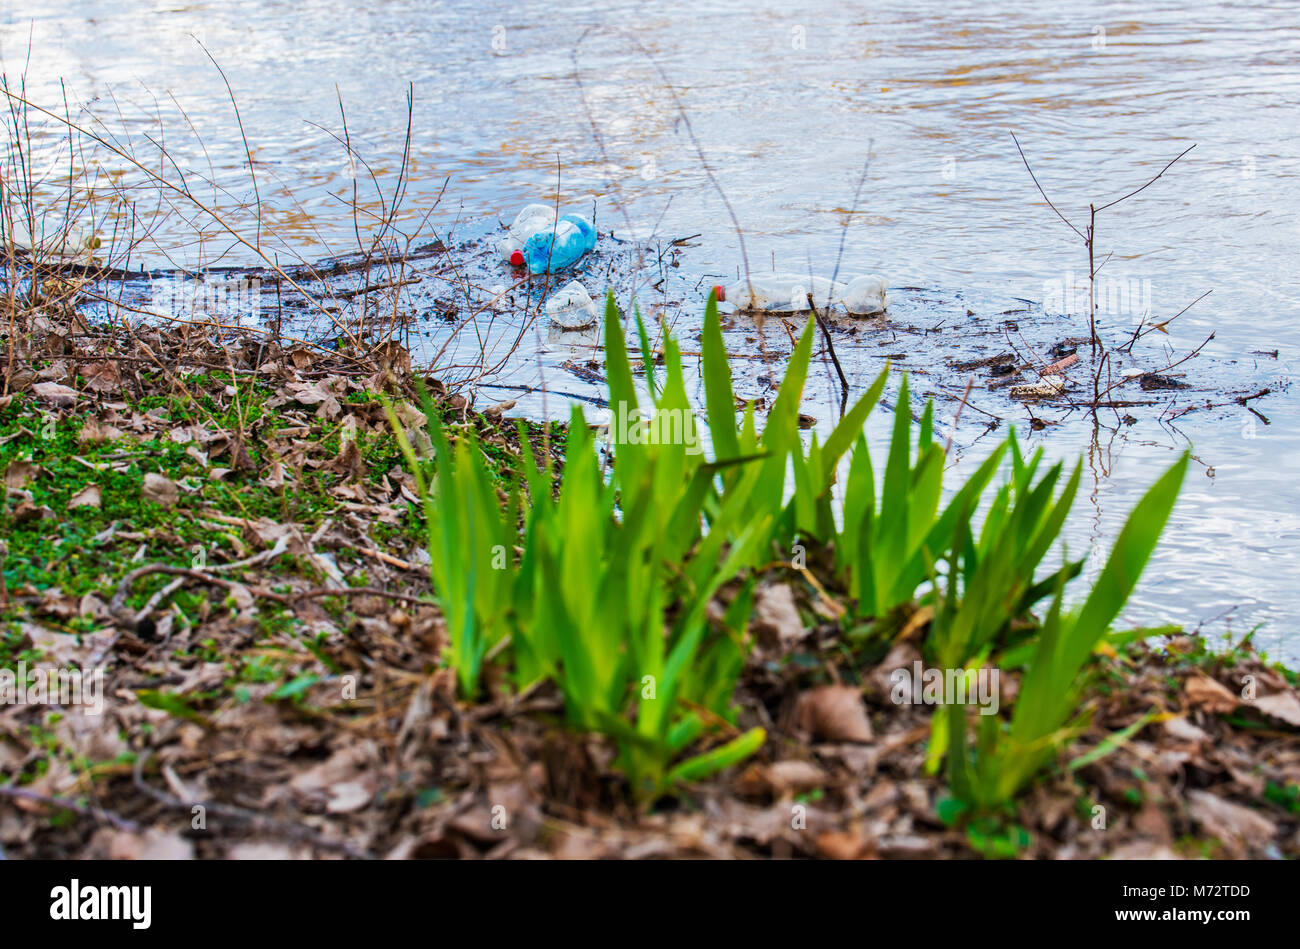 Plastic garbage in the river , pollution and environment concept - Stock Image